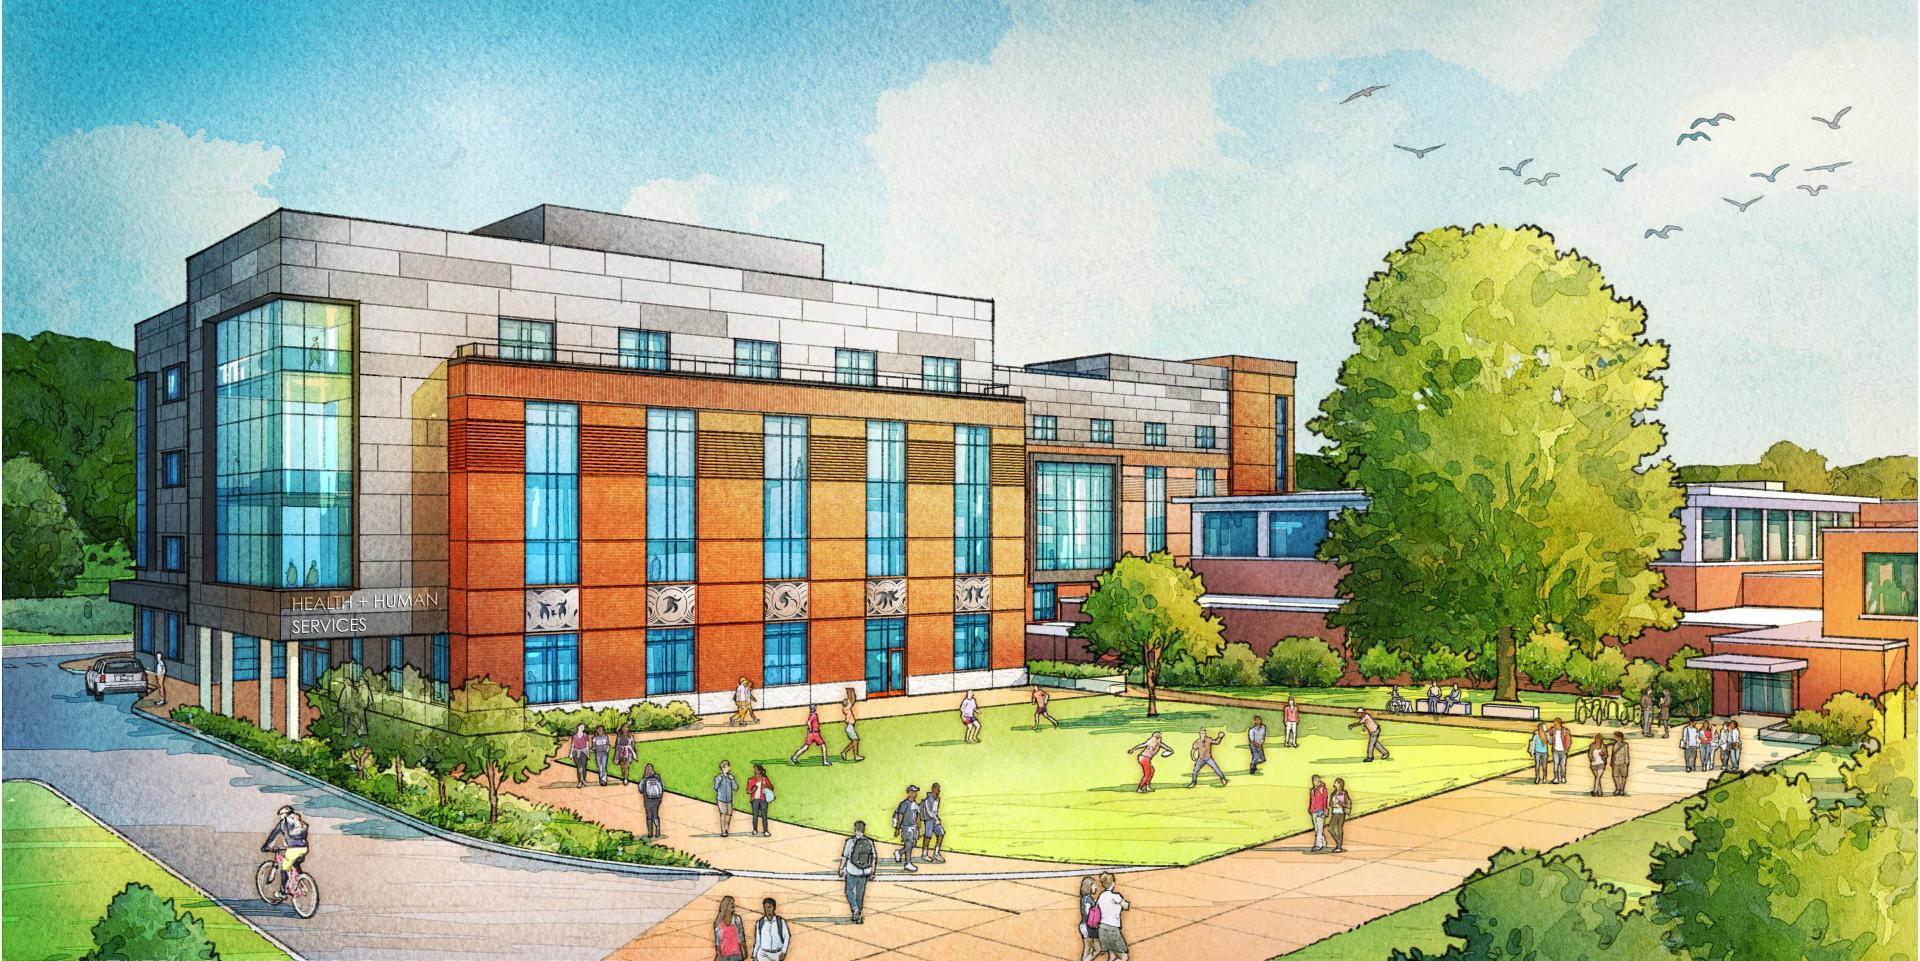 Scsu Rendering Cropped2